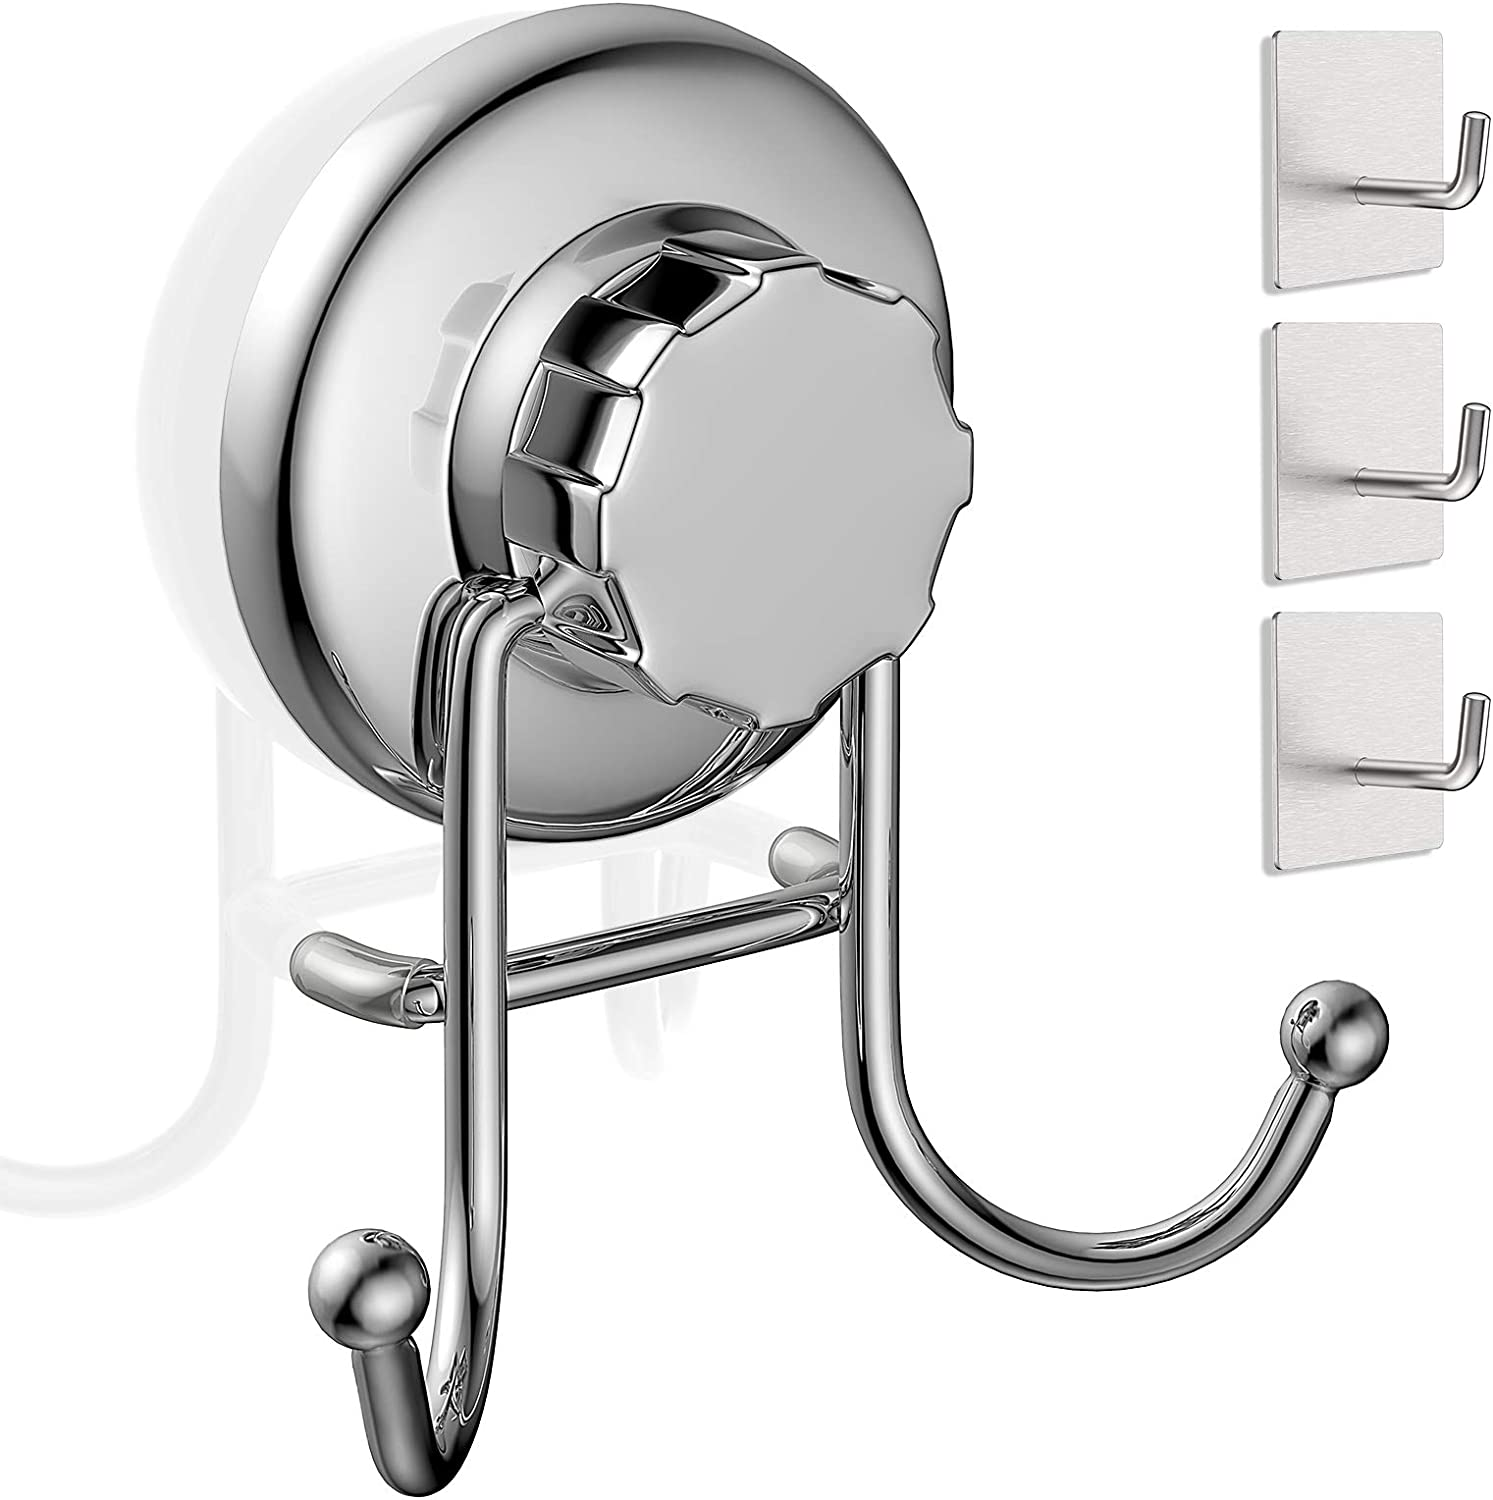 WILLMAKER Vacuum Suction Cup Hooks, Towel Hooks for Bathrooms, Rustproof Stainless Steel Reusable Heavy Duty Shower Wall Double Hooks Easy to Hanger Kitchen, with 3 Pack Adhesive Hooks (Silver)